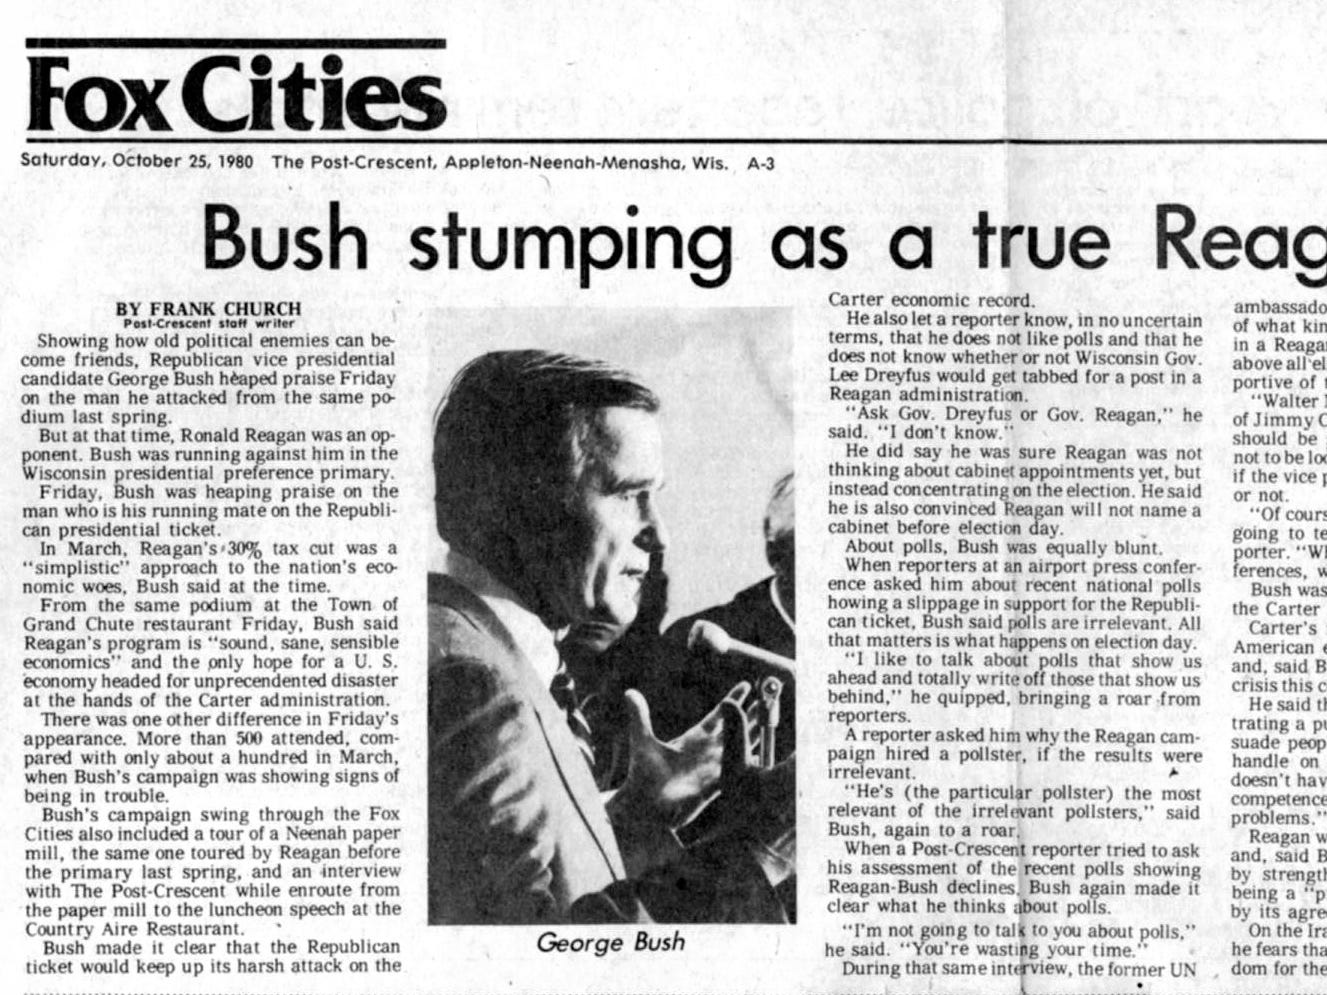 Oct. 25, 1980. Republican vice presidential candidate George H. W. Bush stumping as a true Reagan supporter article by Frank Church in The Post-Crescent.